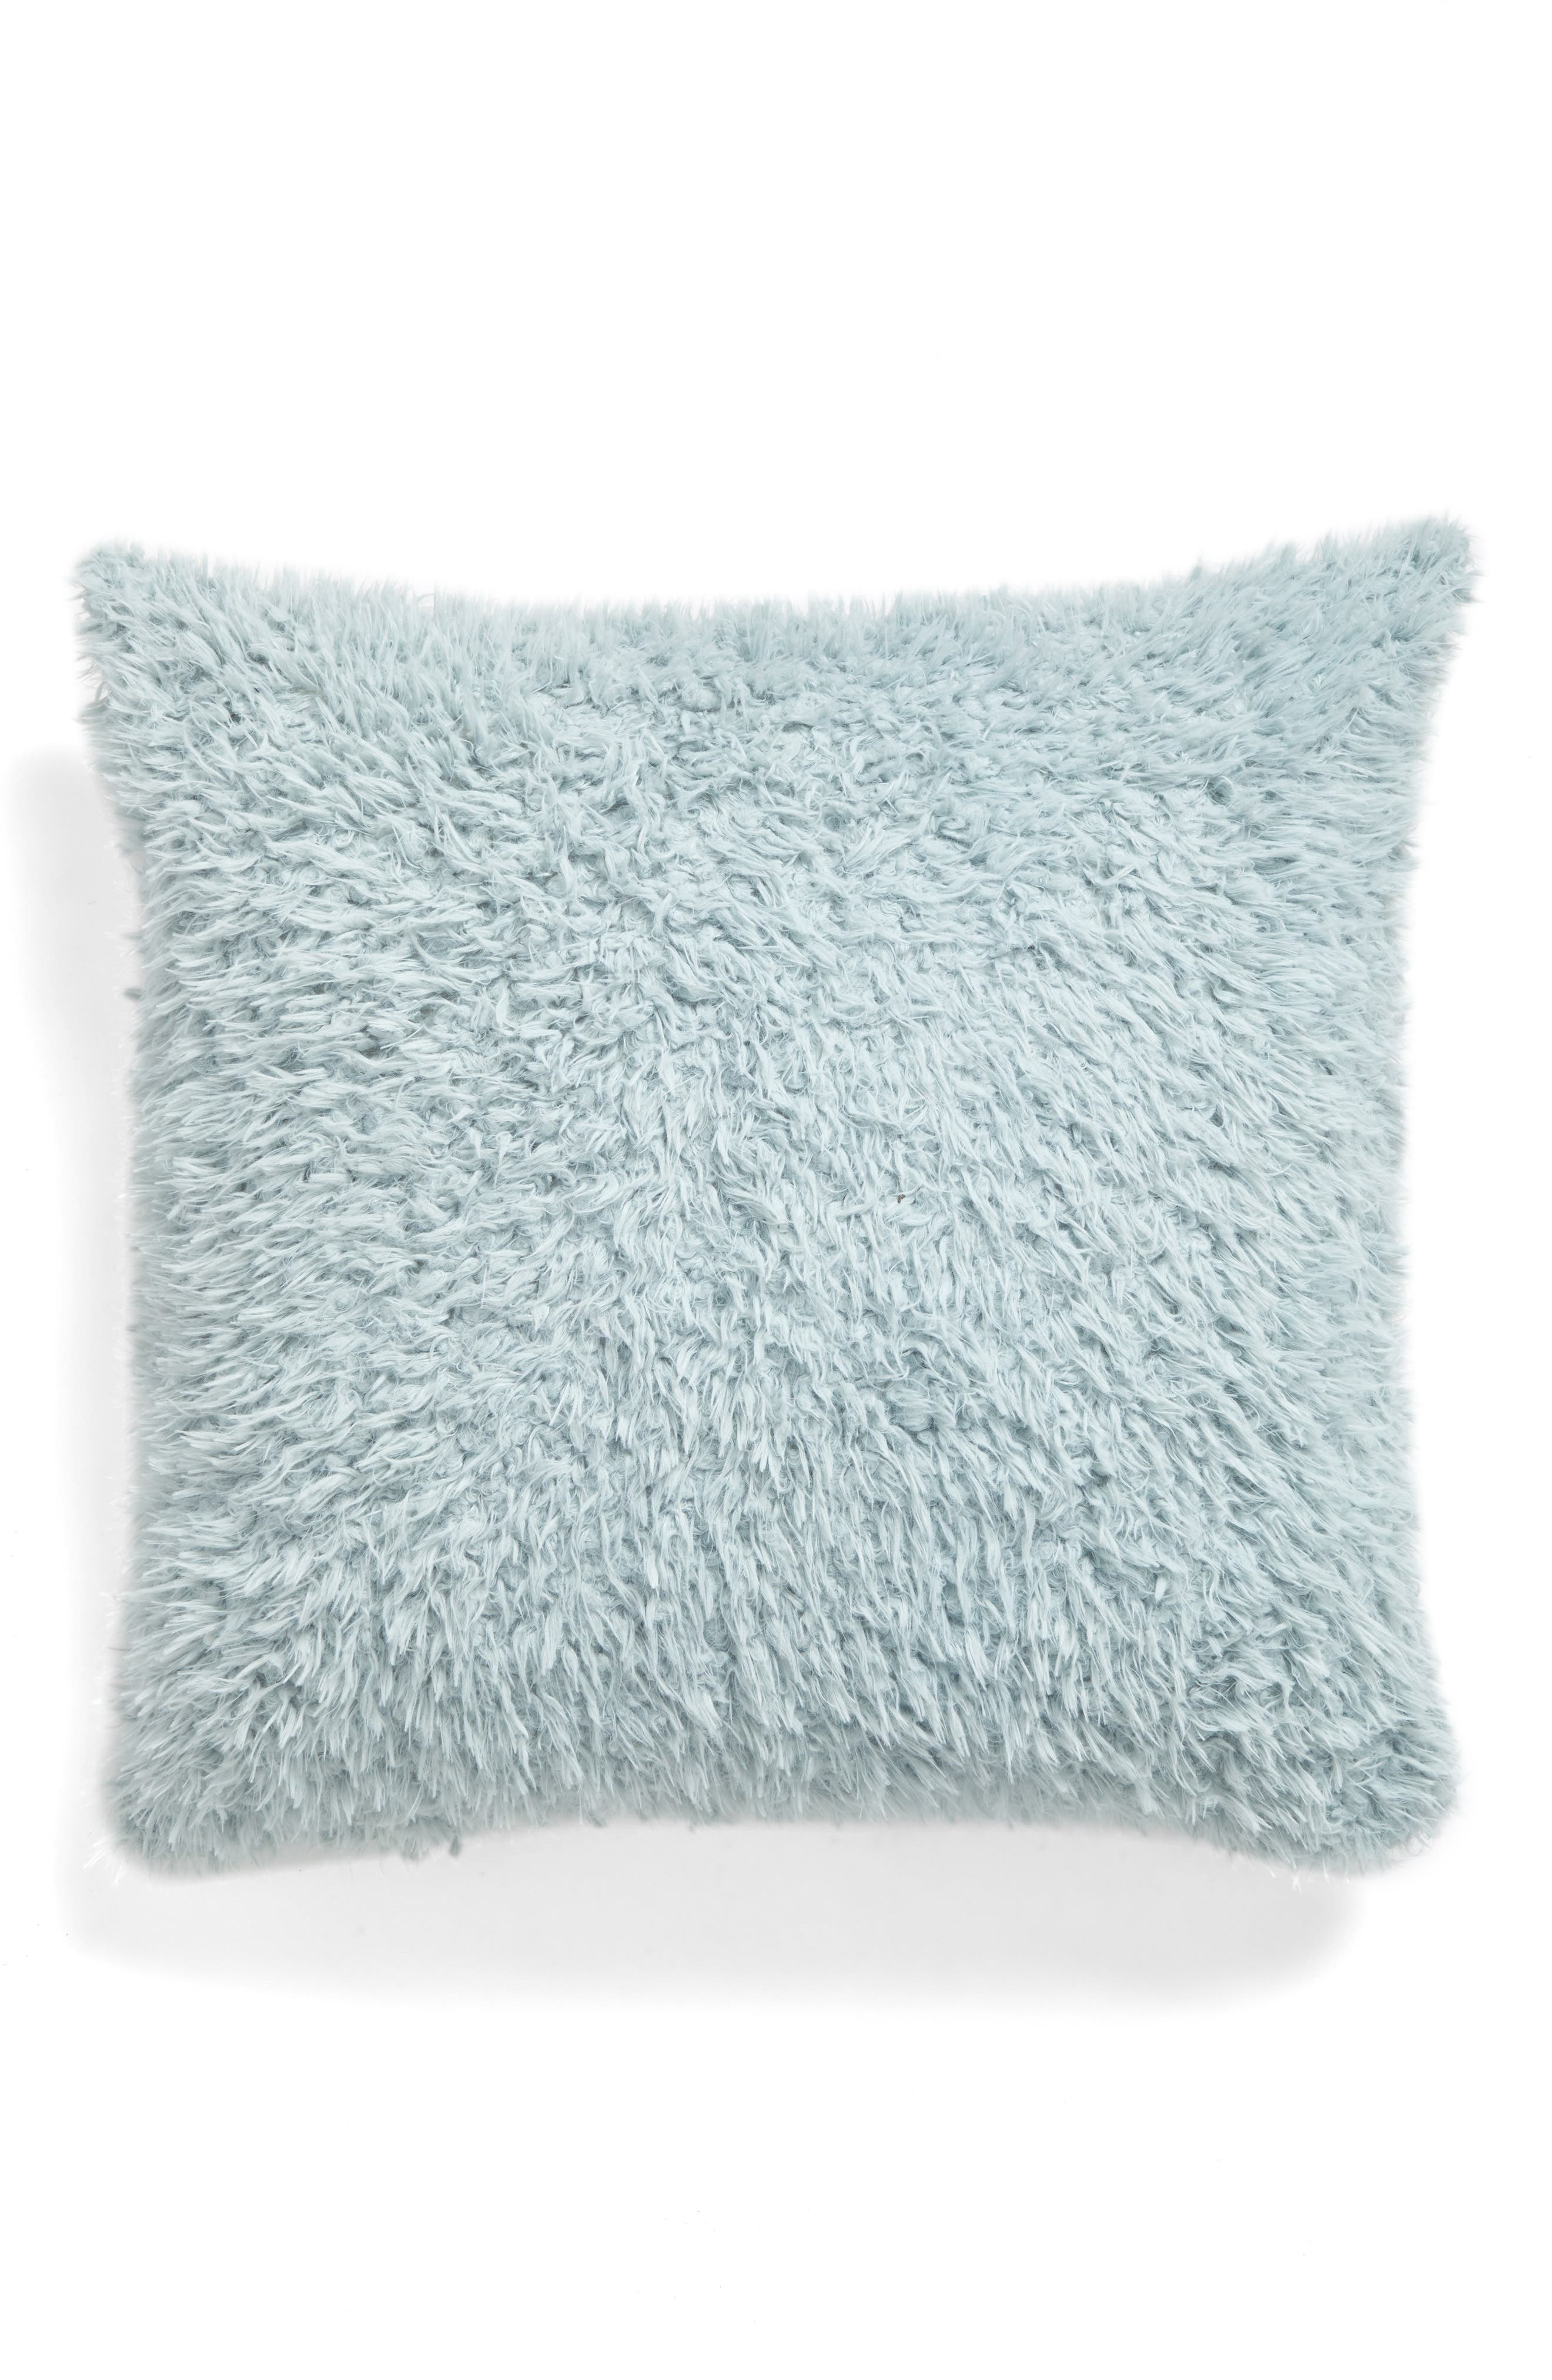 Main Image - Nordstrom at Home Shaggy Plush Pillow